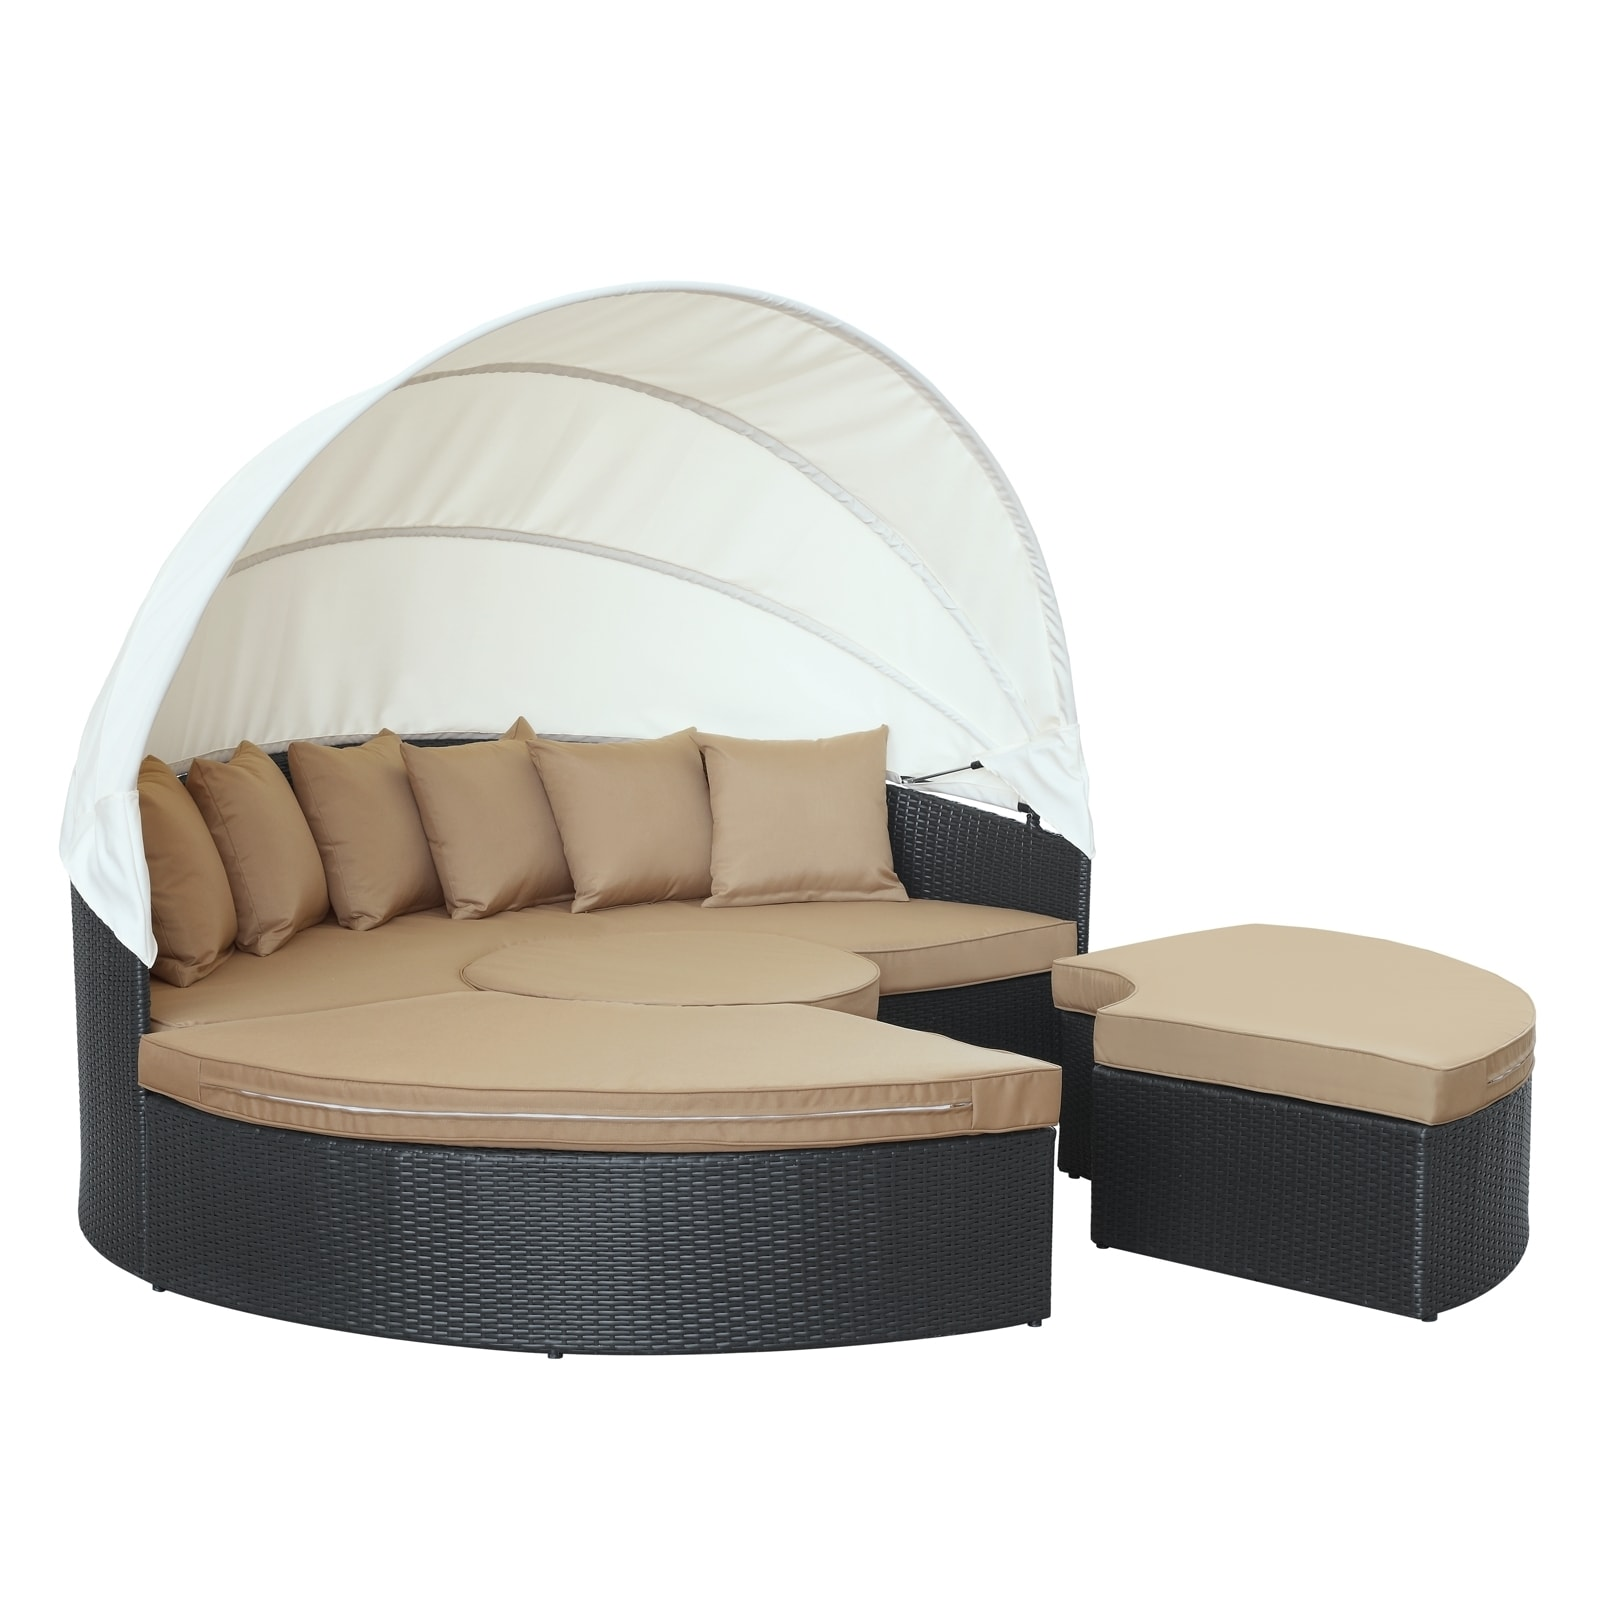 Quest Circular Outdoor Wicker Rattan Patio Daybed with Canopy - Free Shipping Today - Overstock.com - 16055559  sc 1 st  Overstock.com & Quest Circular Outdoor Wicker Rattan Patio Daybed with Canopy ...